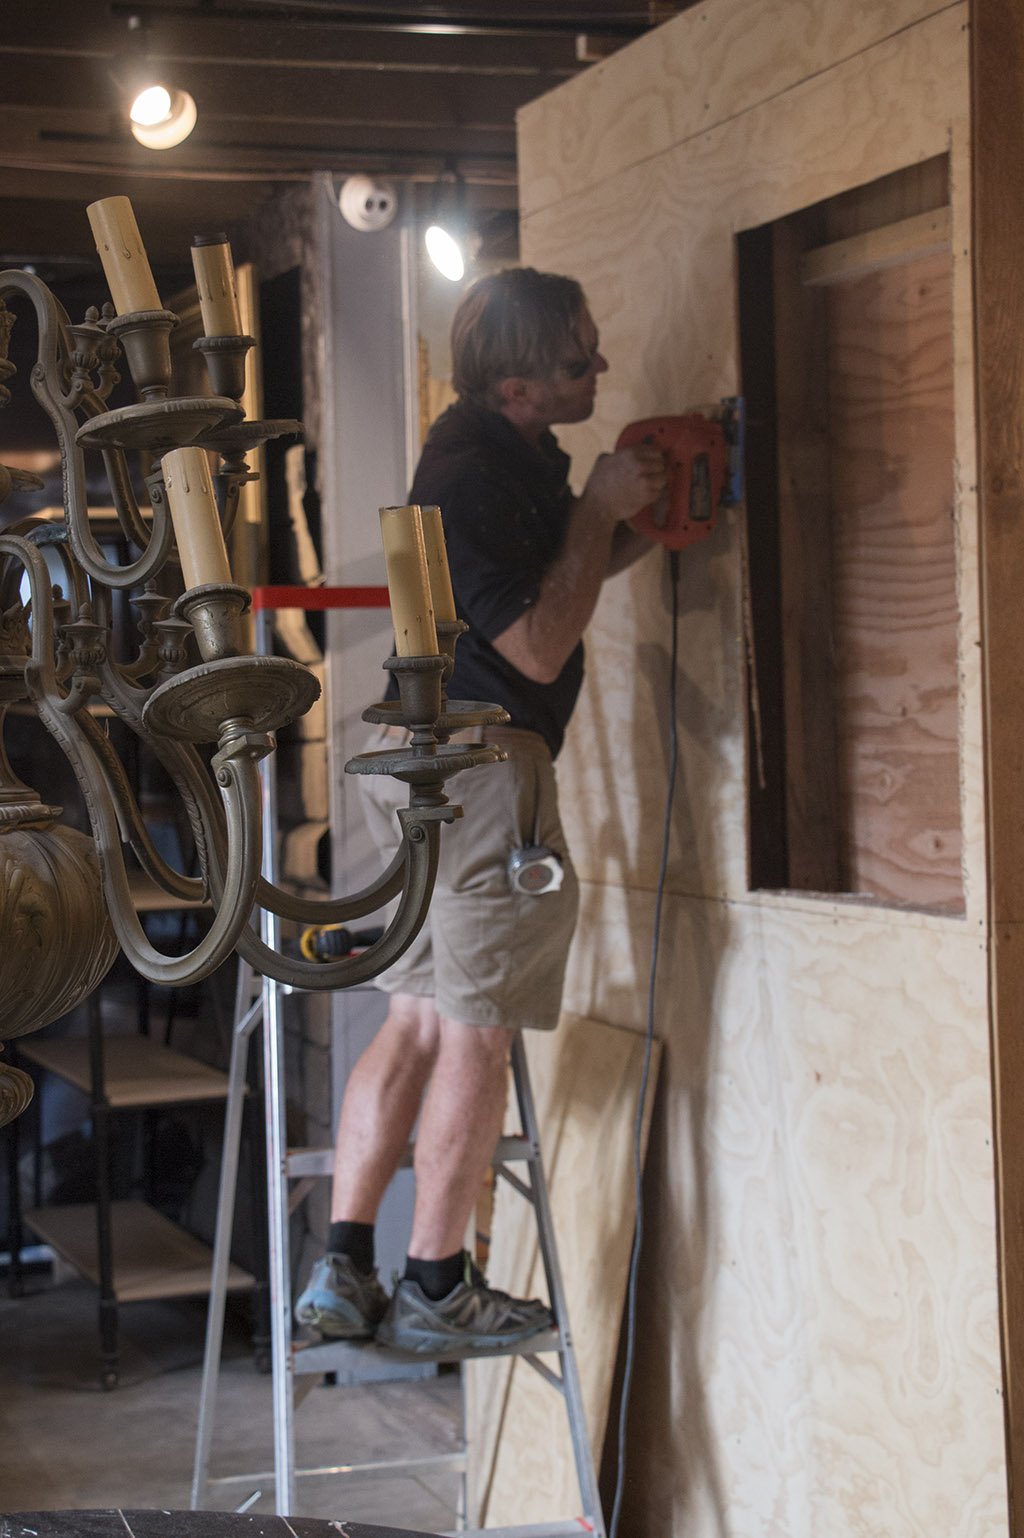 An image of one of the Roger's Gardens staff members building a Halloween set